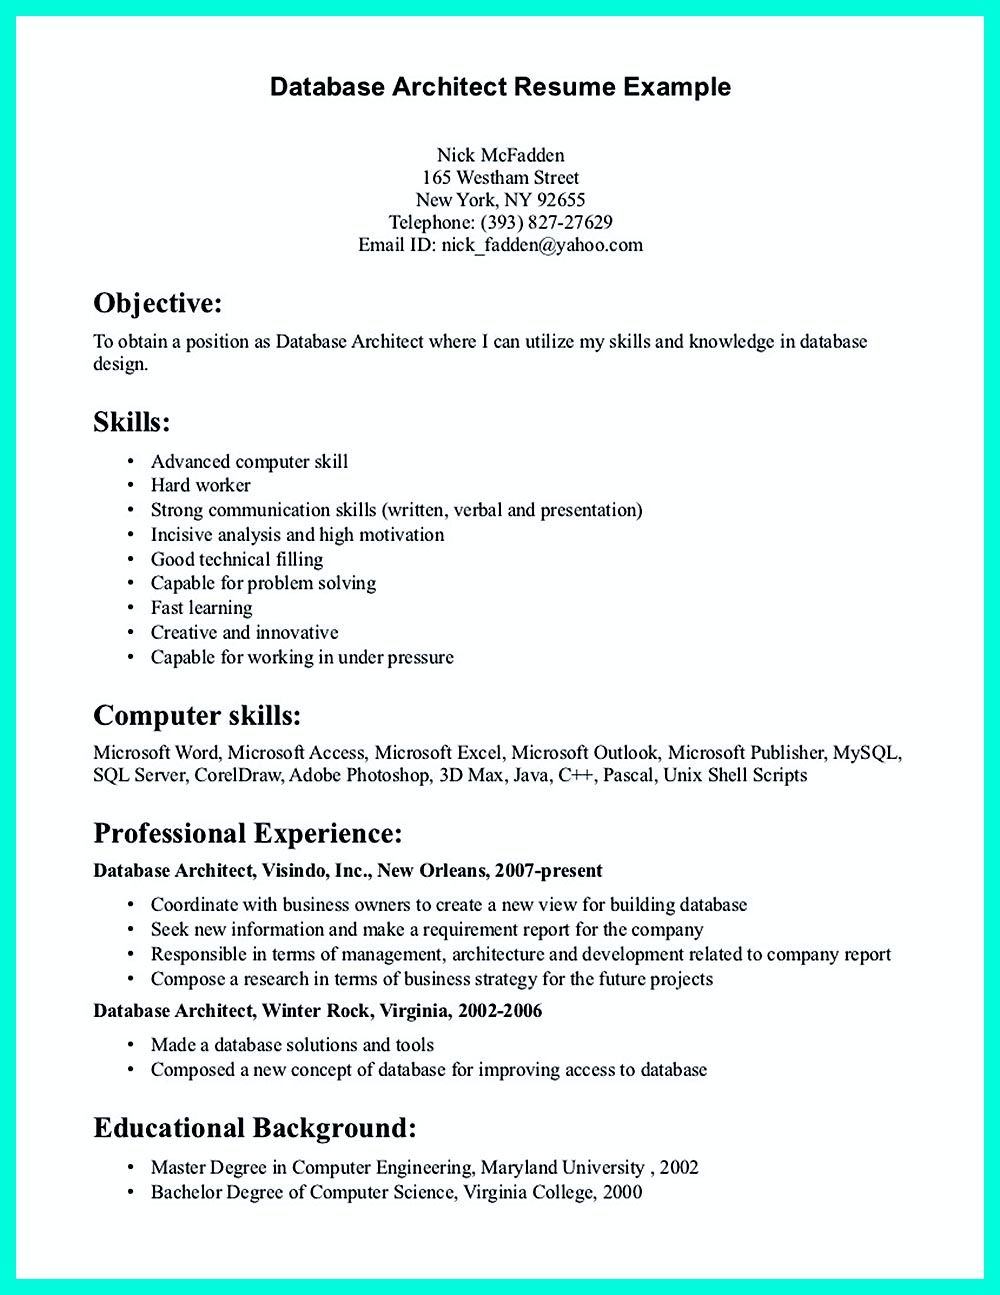 in the data architect resume one must describe the professional